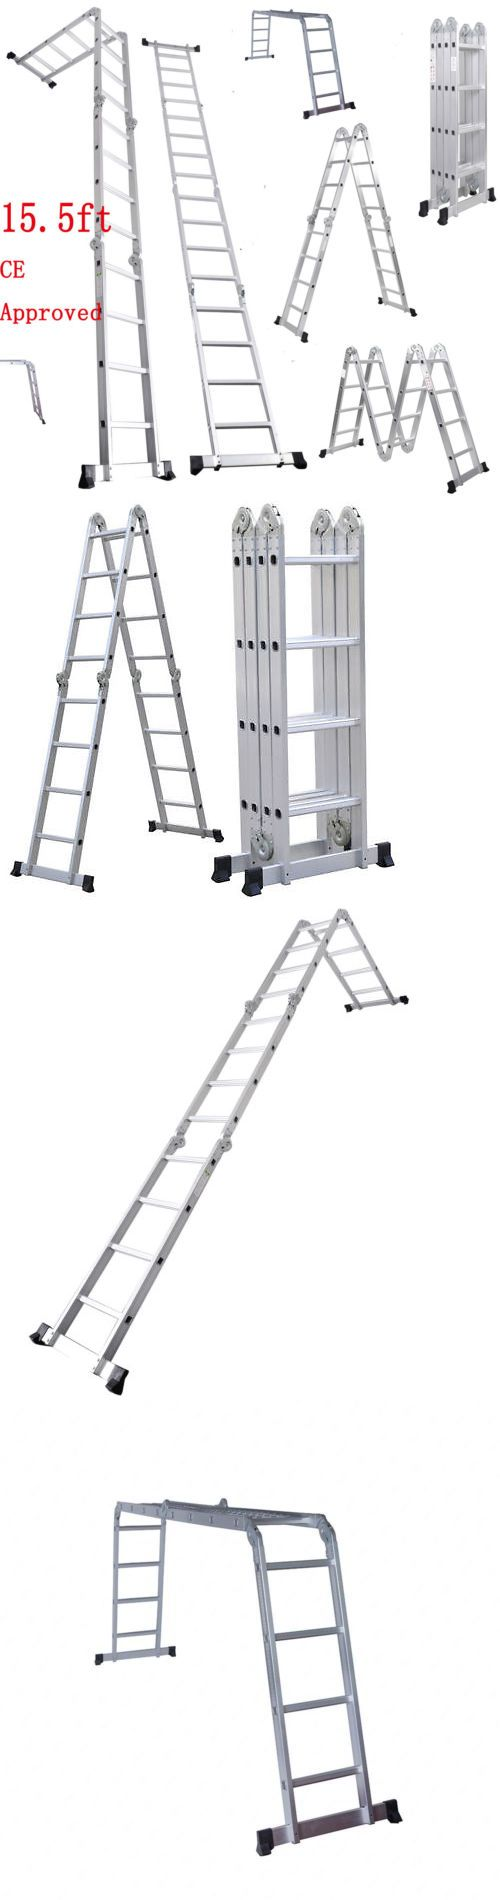 Ladders 112567: 15.5Ft Multi Purpose Aluminum Folding Step Ladder Scaffold Extendable Heavy Duty -> BUY IT NOW ONLY: $81.6 on eBay!